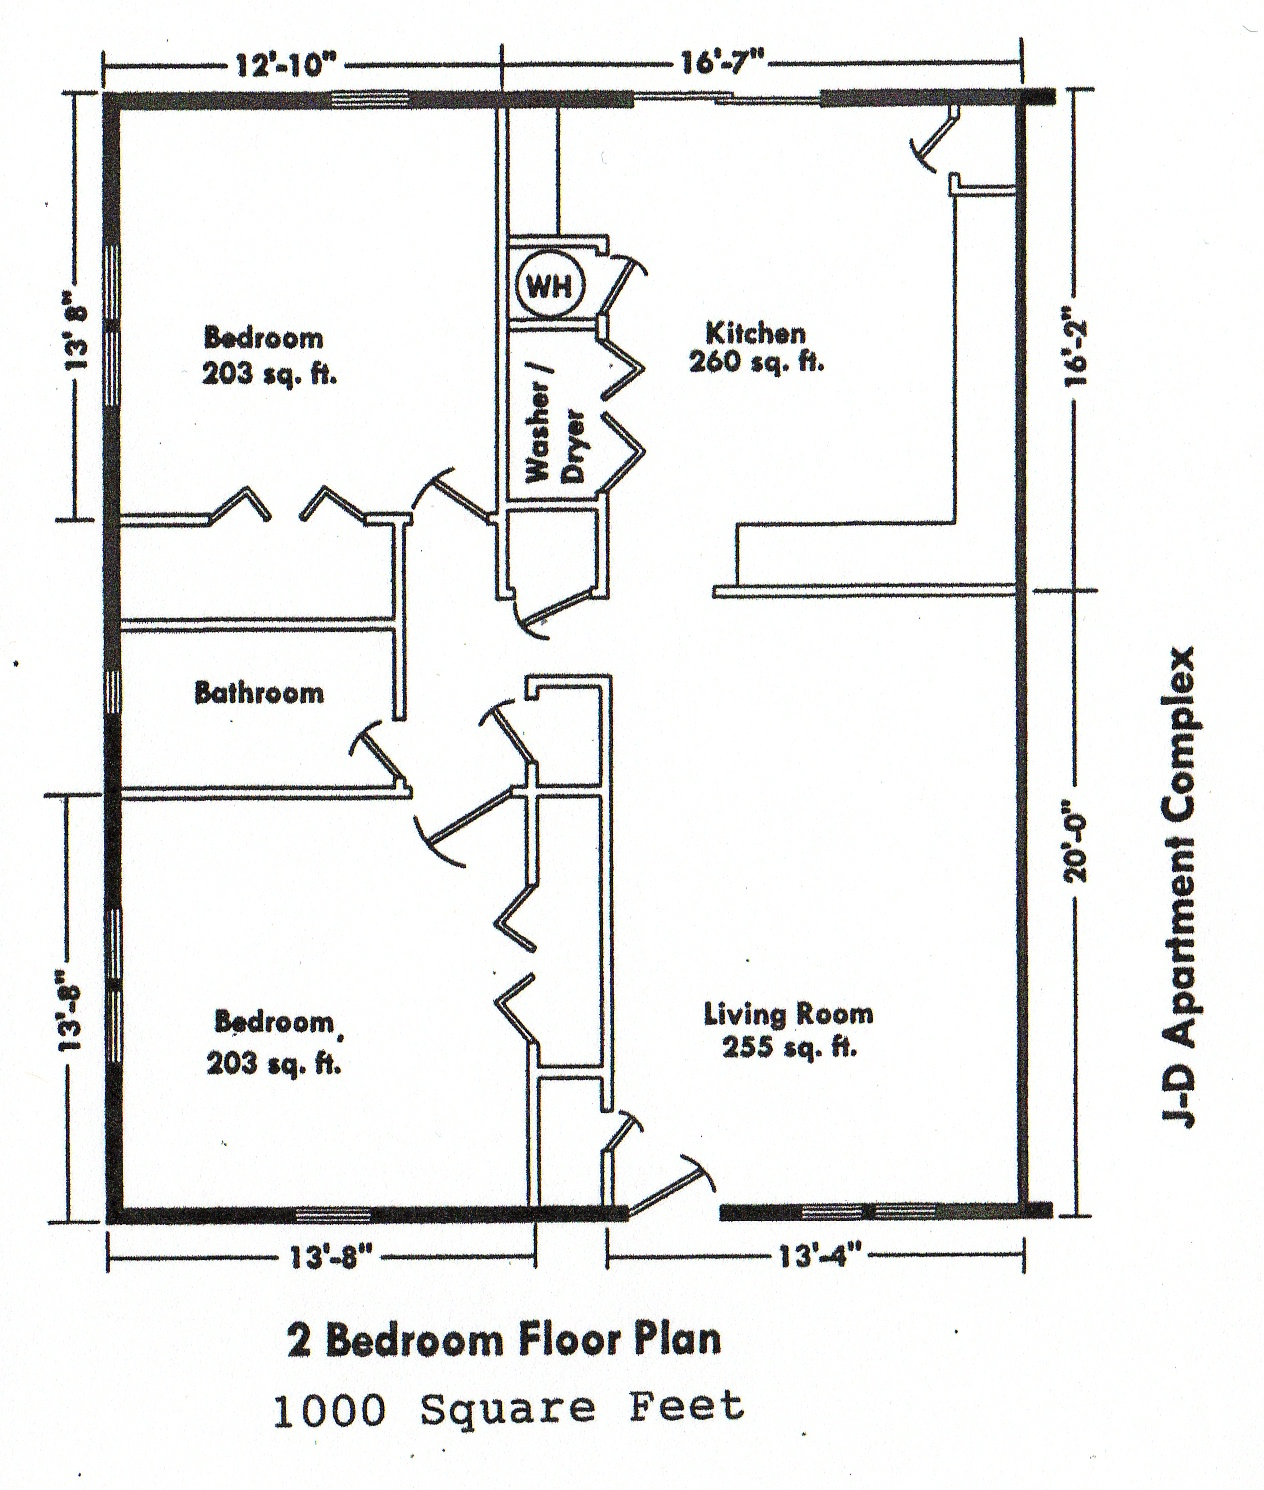 Modular home modular homes 2 bedroom floor plans - House plans bedrooms ...